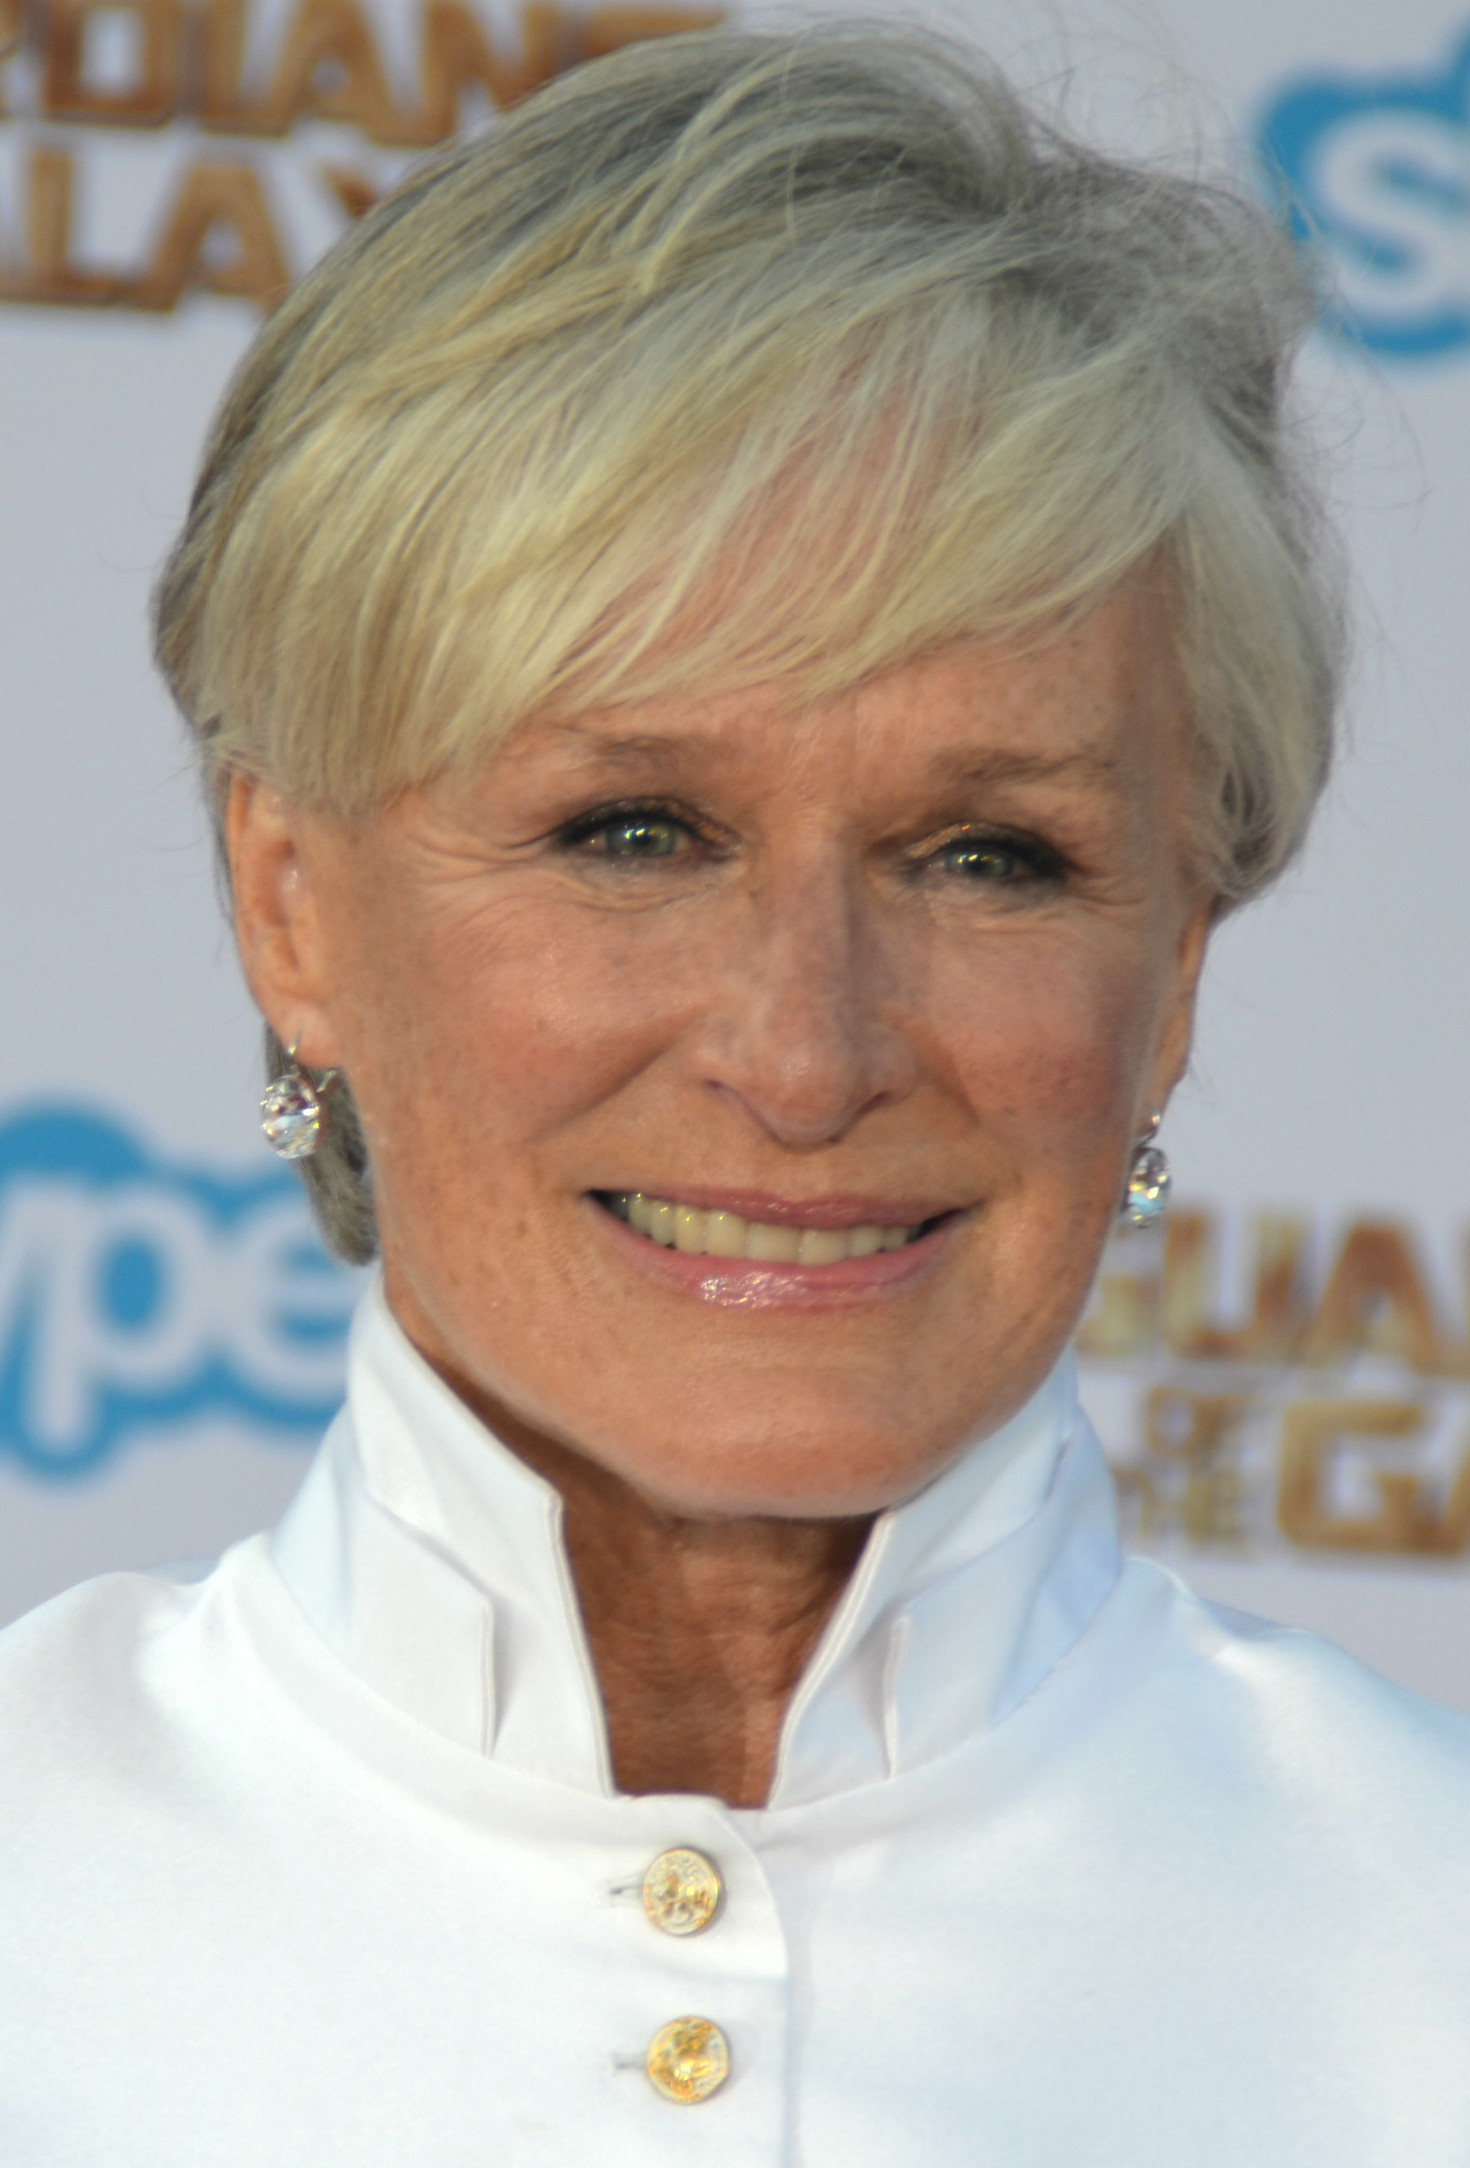 glenn close 2017glenn close young, glenn close 1988, glenn close hillary, glenn close jeff bridges, glenn close sister jessie, glenn close family guy, glenn close 2017, glenn close attraction, glenn close chumscrubber, glenn close war, glenn close british accent, glenn close wiki, glenn close laugh, glenn close and john starke, glenn close and judy davis, glenn close photos, glenn close warcraft, glenn close cigar, glenn close mia wasikowska, glenn close roles